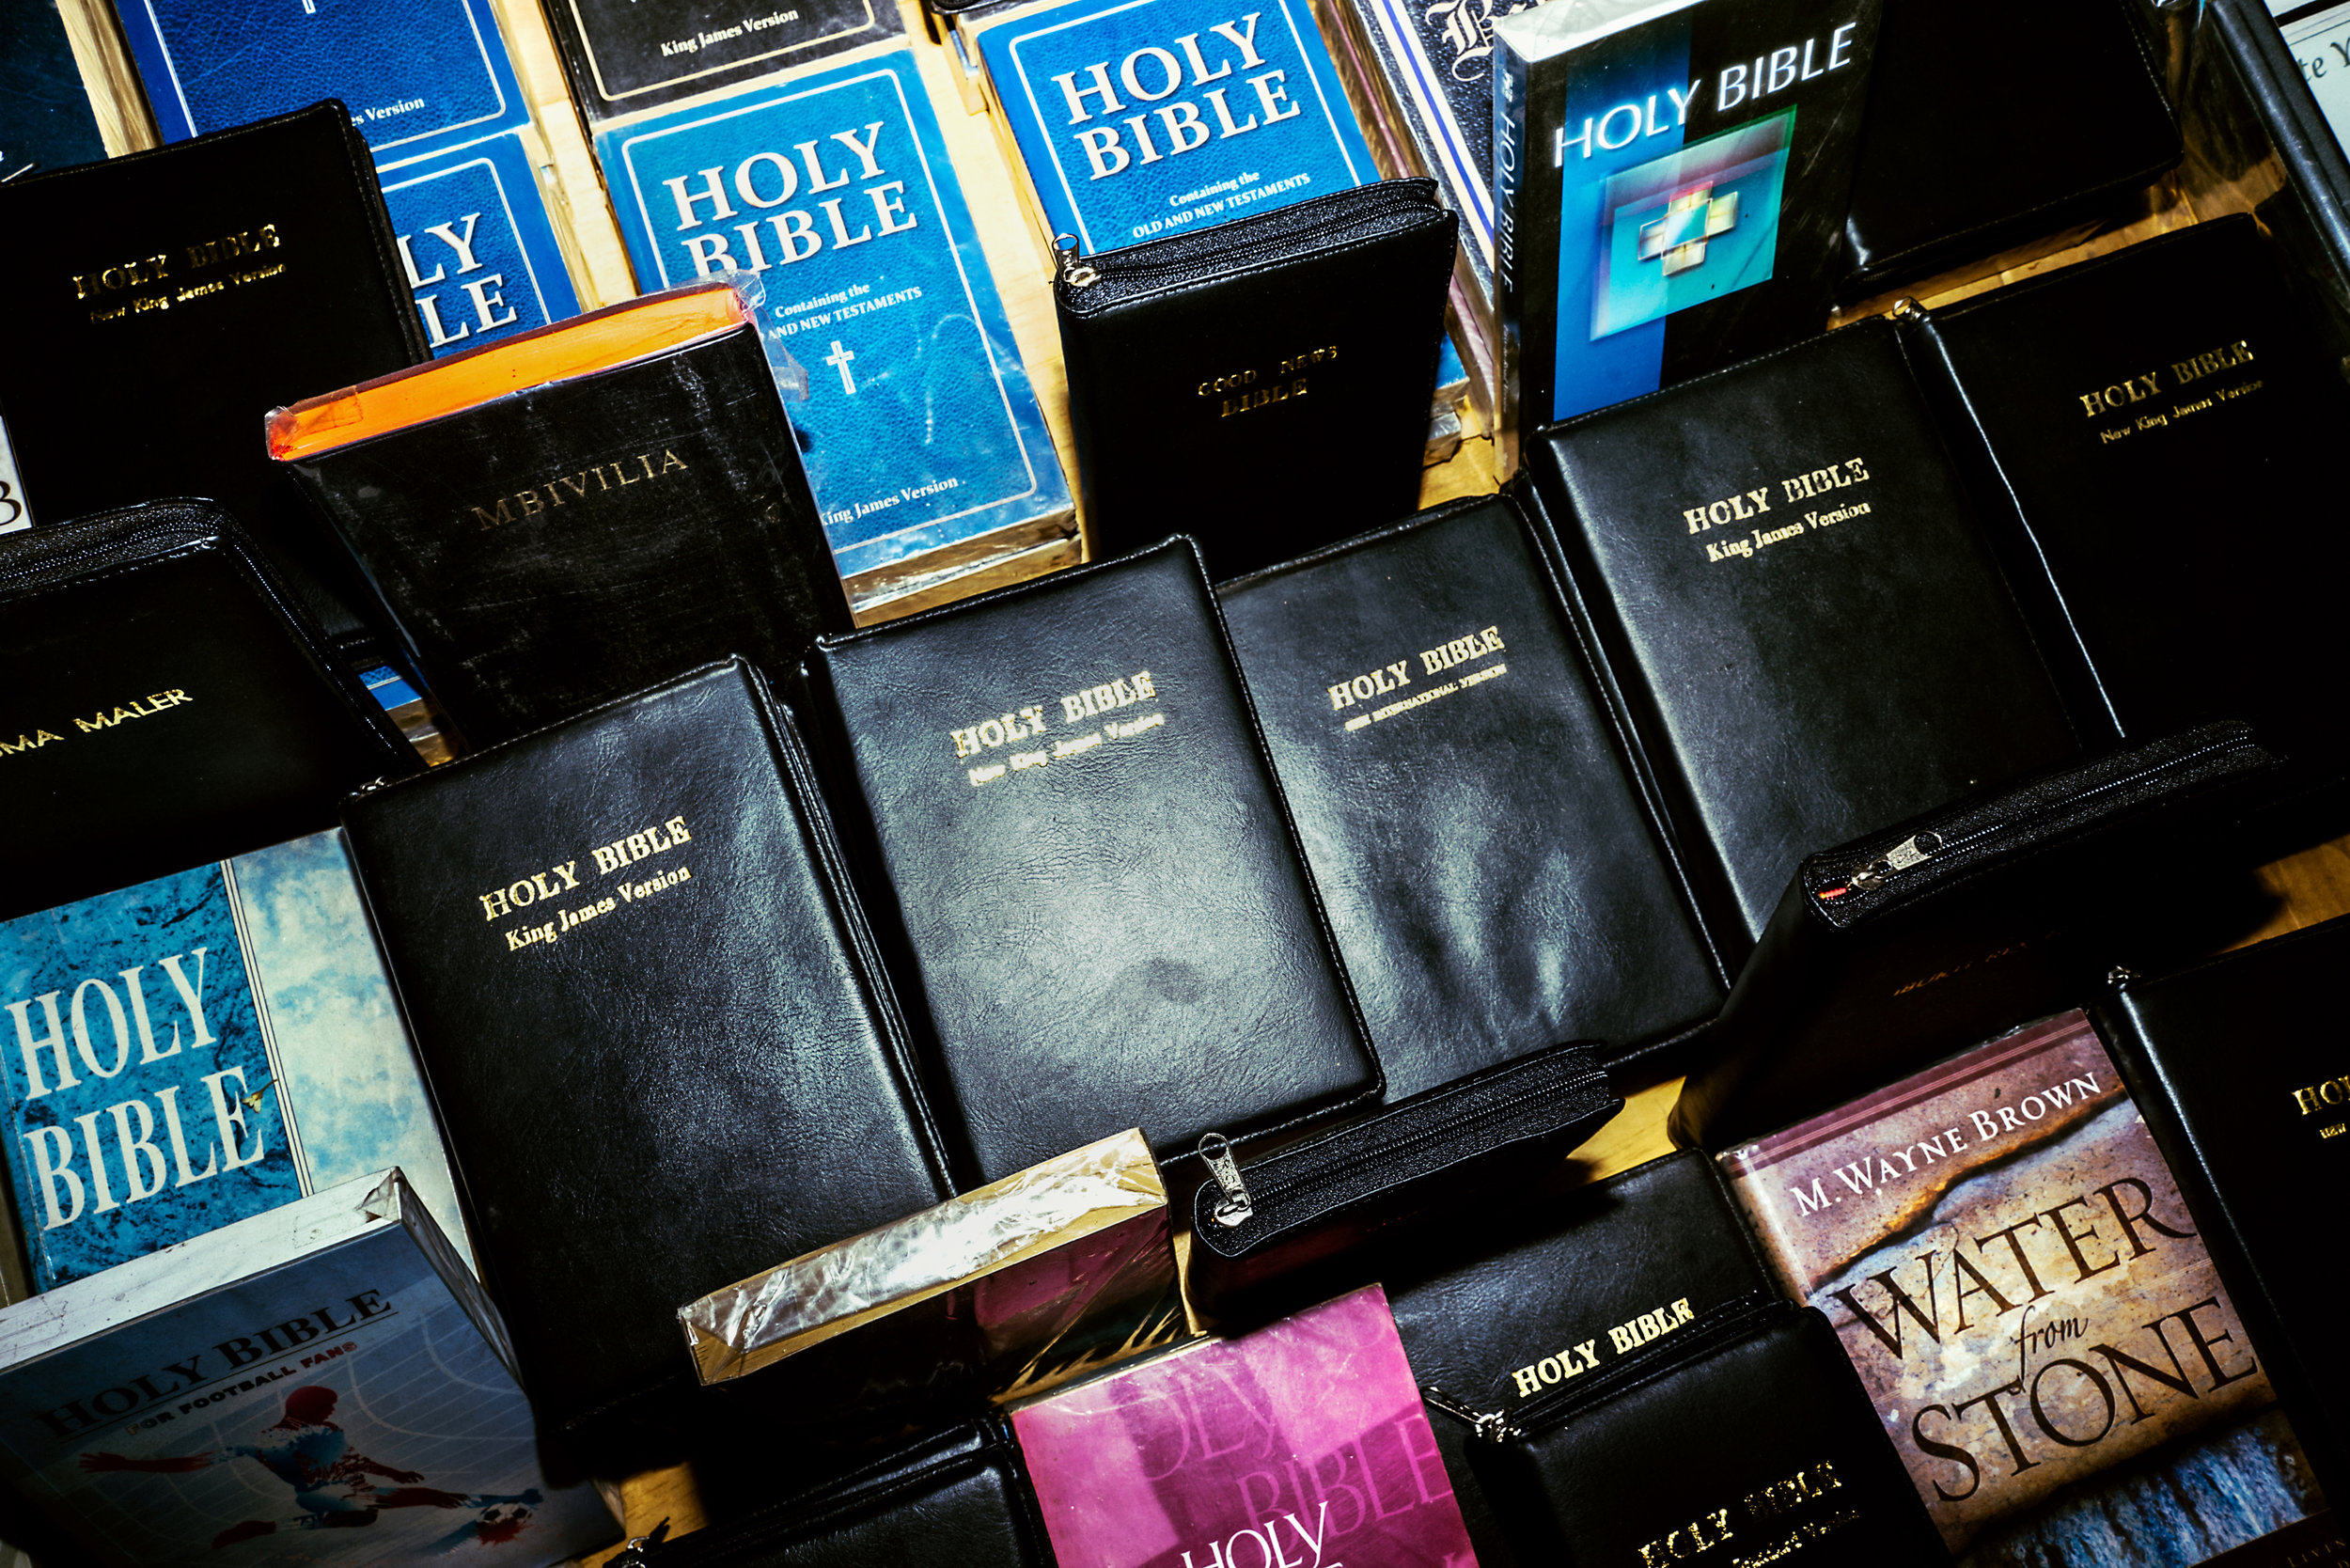 Bibles for sale on the streets in Nairobi. Advocates say that the increasing prevalence of evangelical christians has led to an increase in homophobia.